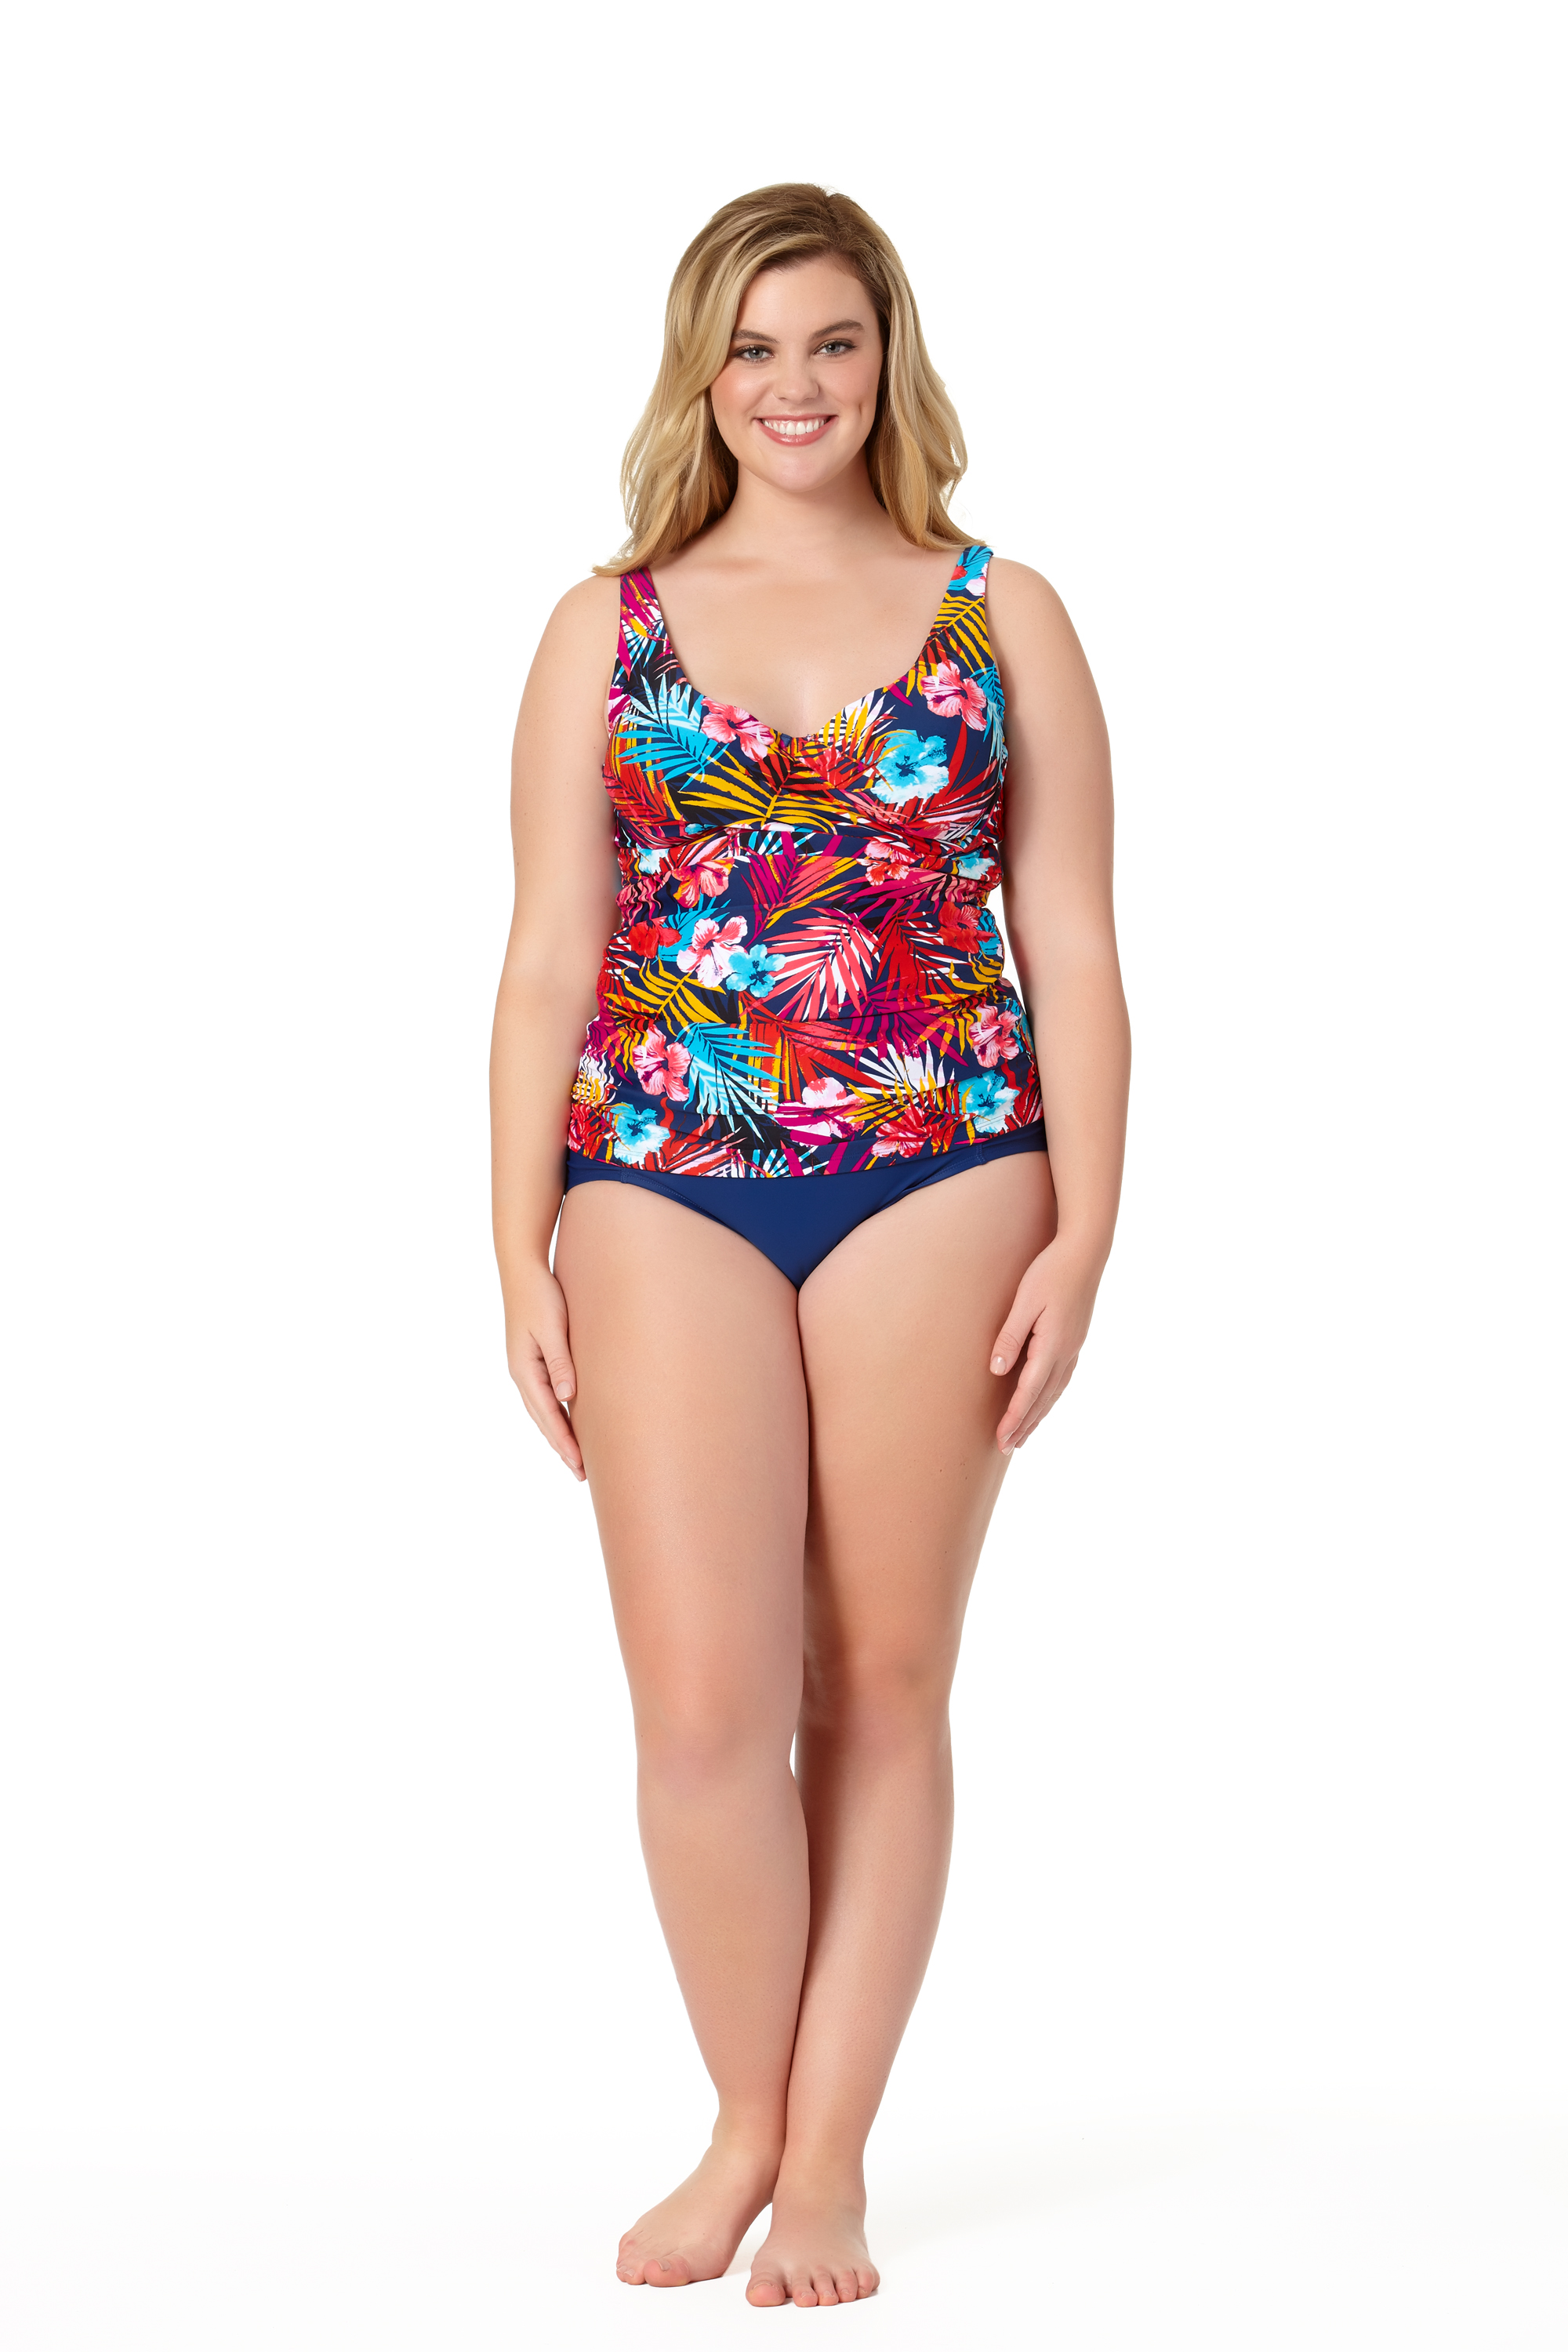 STYLE #CTP17404T /CTP17500B - Hawaii Dream Twist Halterkini TopSOLD OUTSolid High Waist BottomSOLD OUT